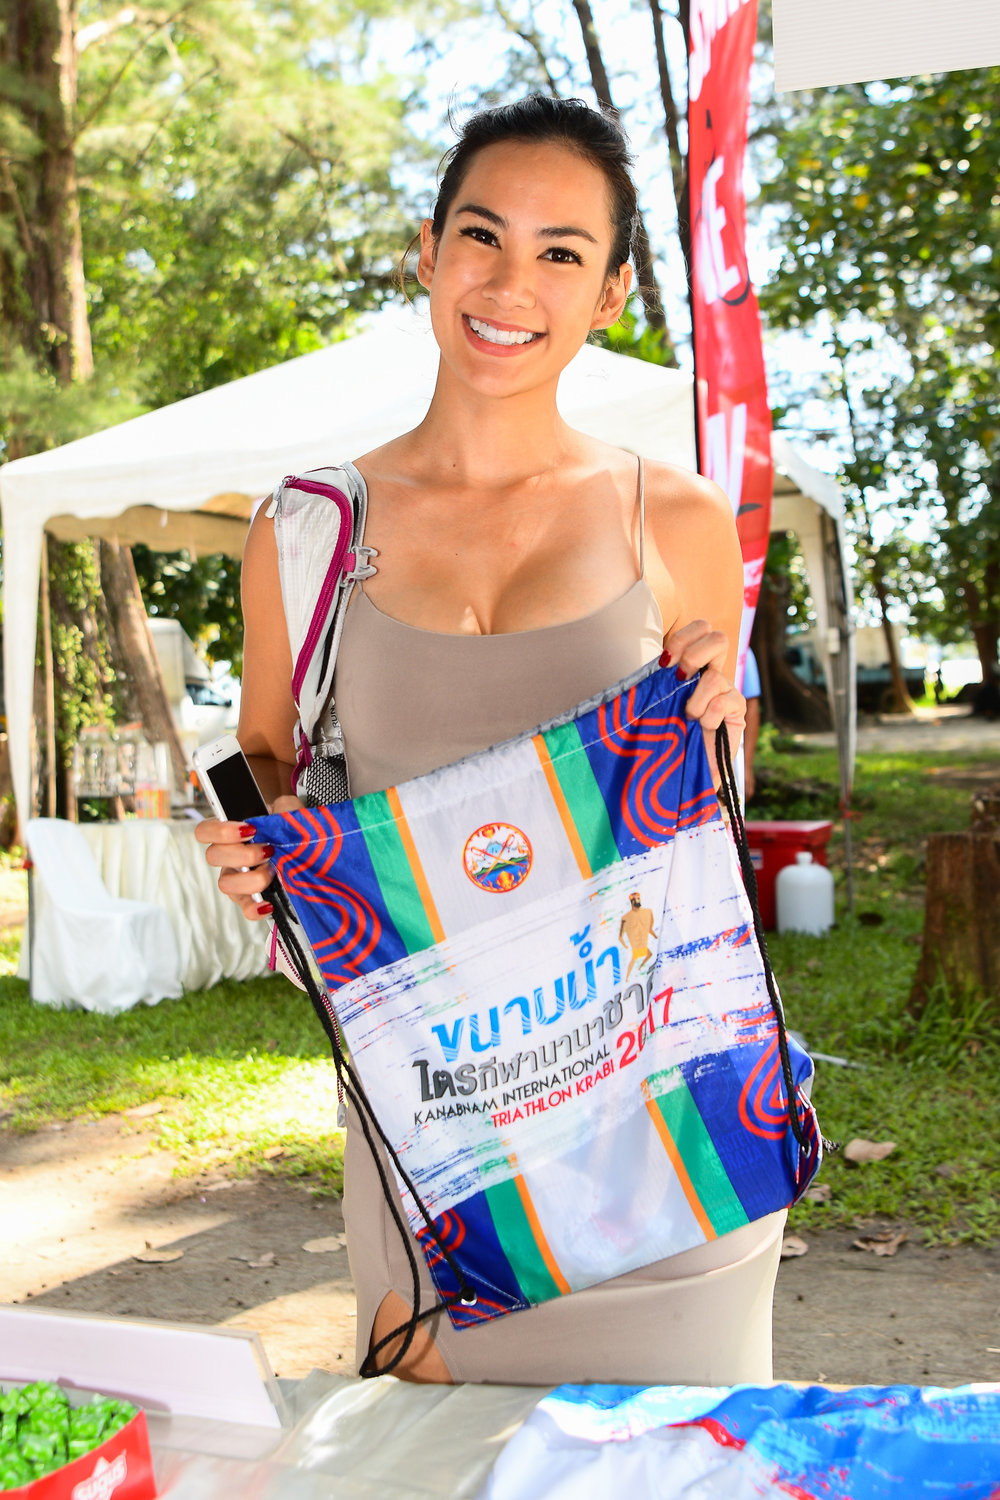 KRABI, THAILAND - SEPTEMBER 02: Special guest supermodel Manow Phoranee Sritan checking-in prior race day of KANABNAM INTERNATIONAL TRIATHLON KRABI 2017 on September 02, 2017 in Nopparat Thara Beach, Ao Nang , Krabi, Thailand. (Photo by: Naratip Srisupab/Thailand Photo SEALs Sports Photography)